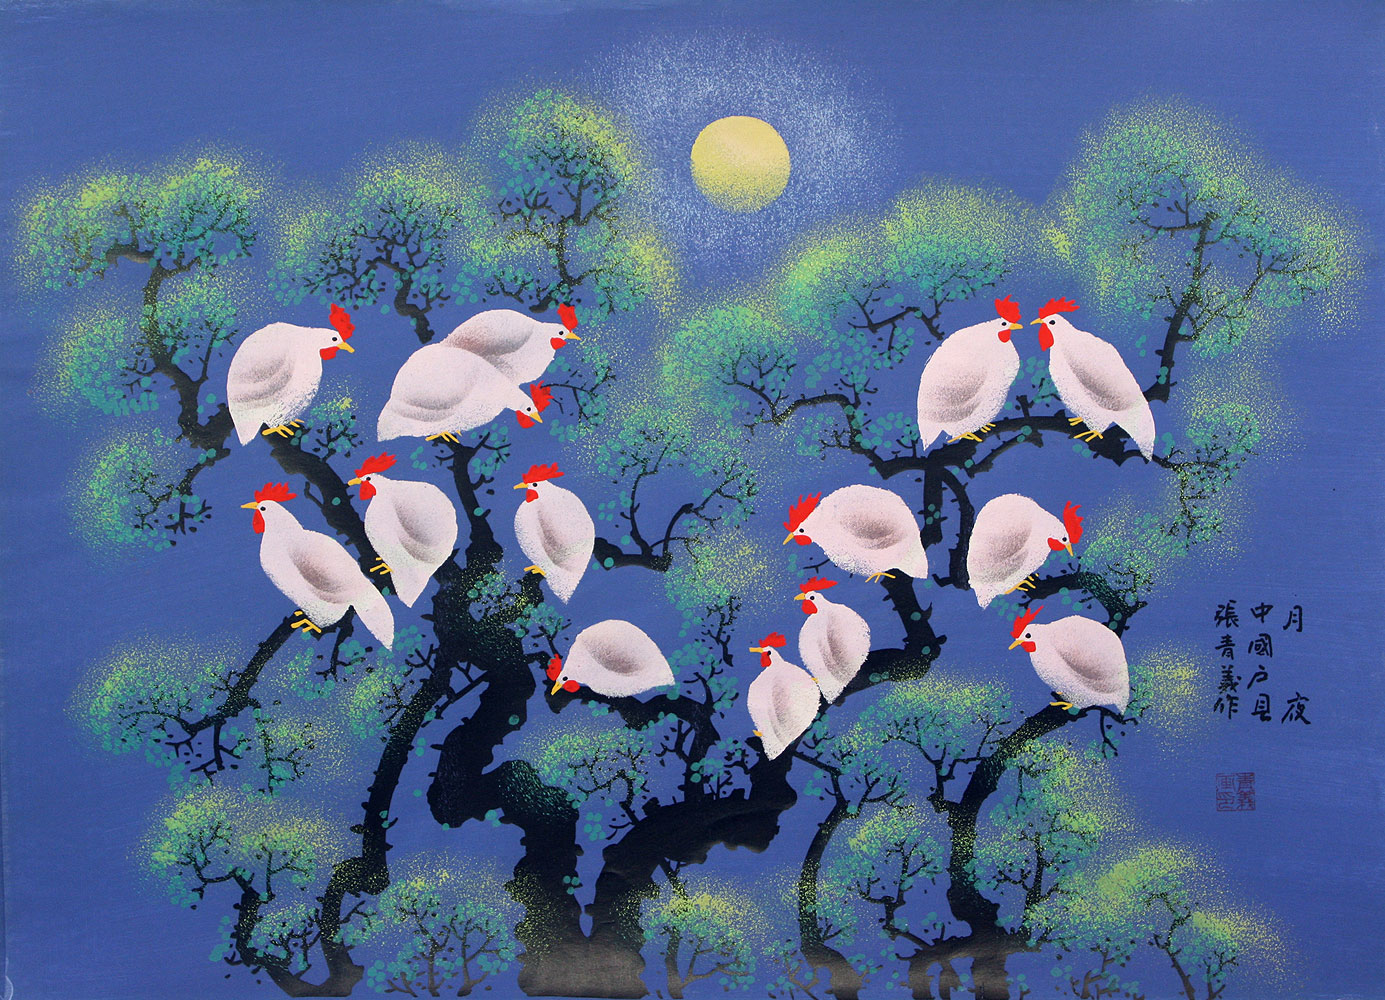 Moonlight Birds - Huxian Peasant Folk Art